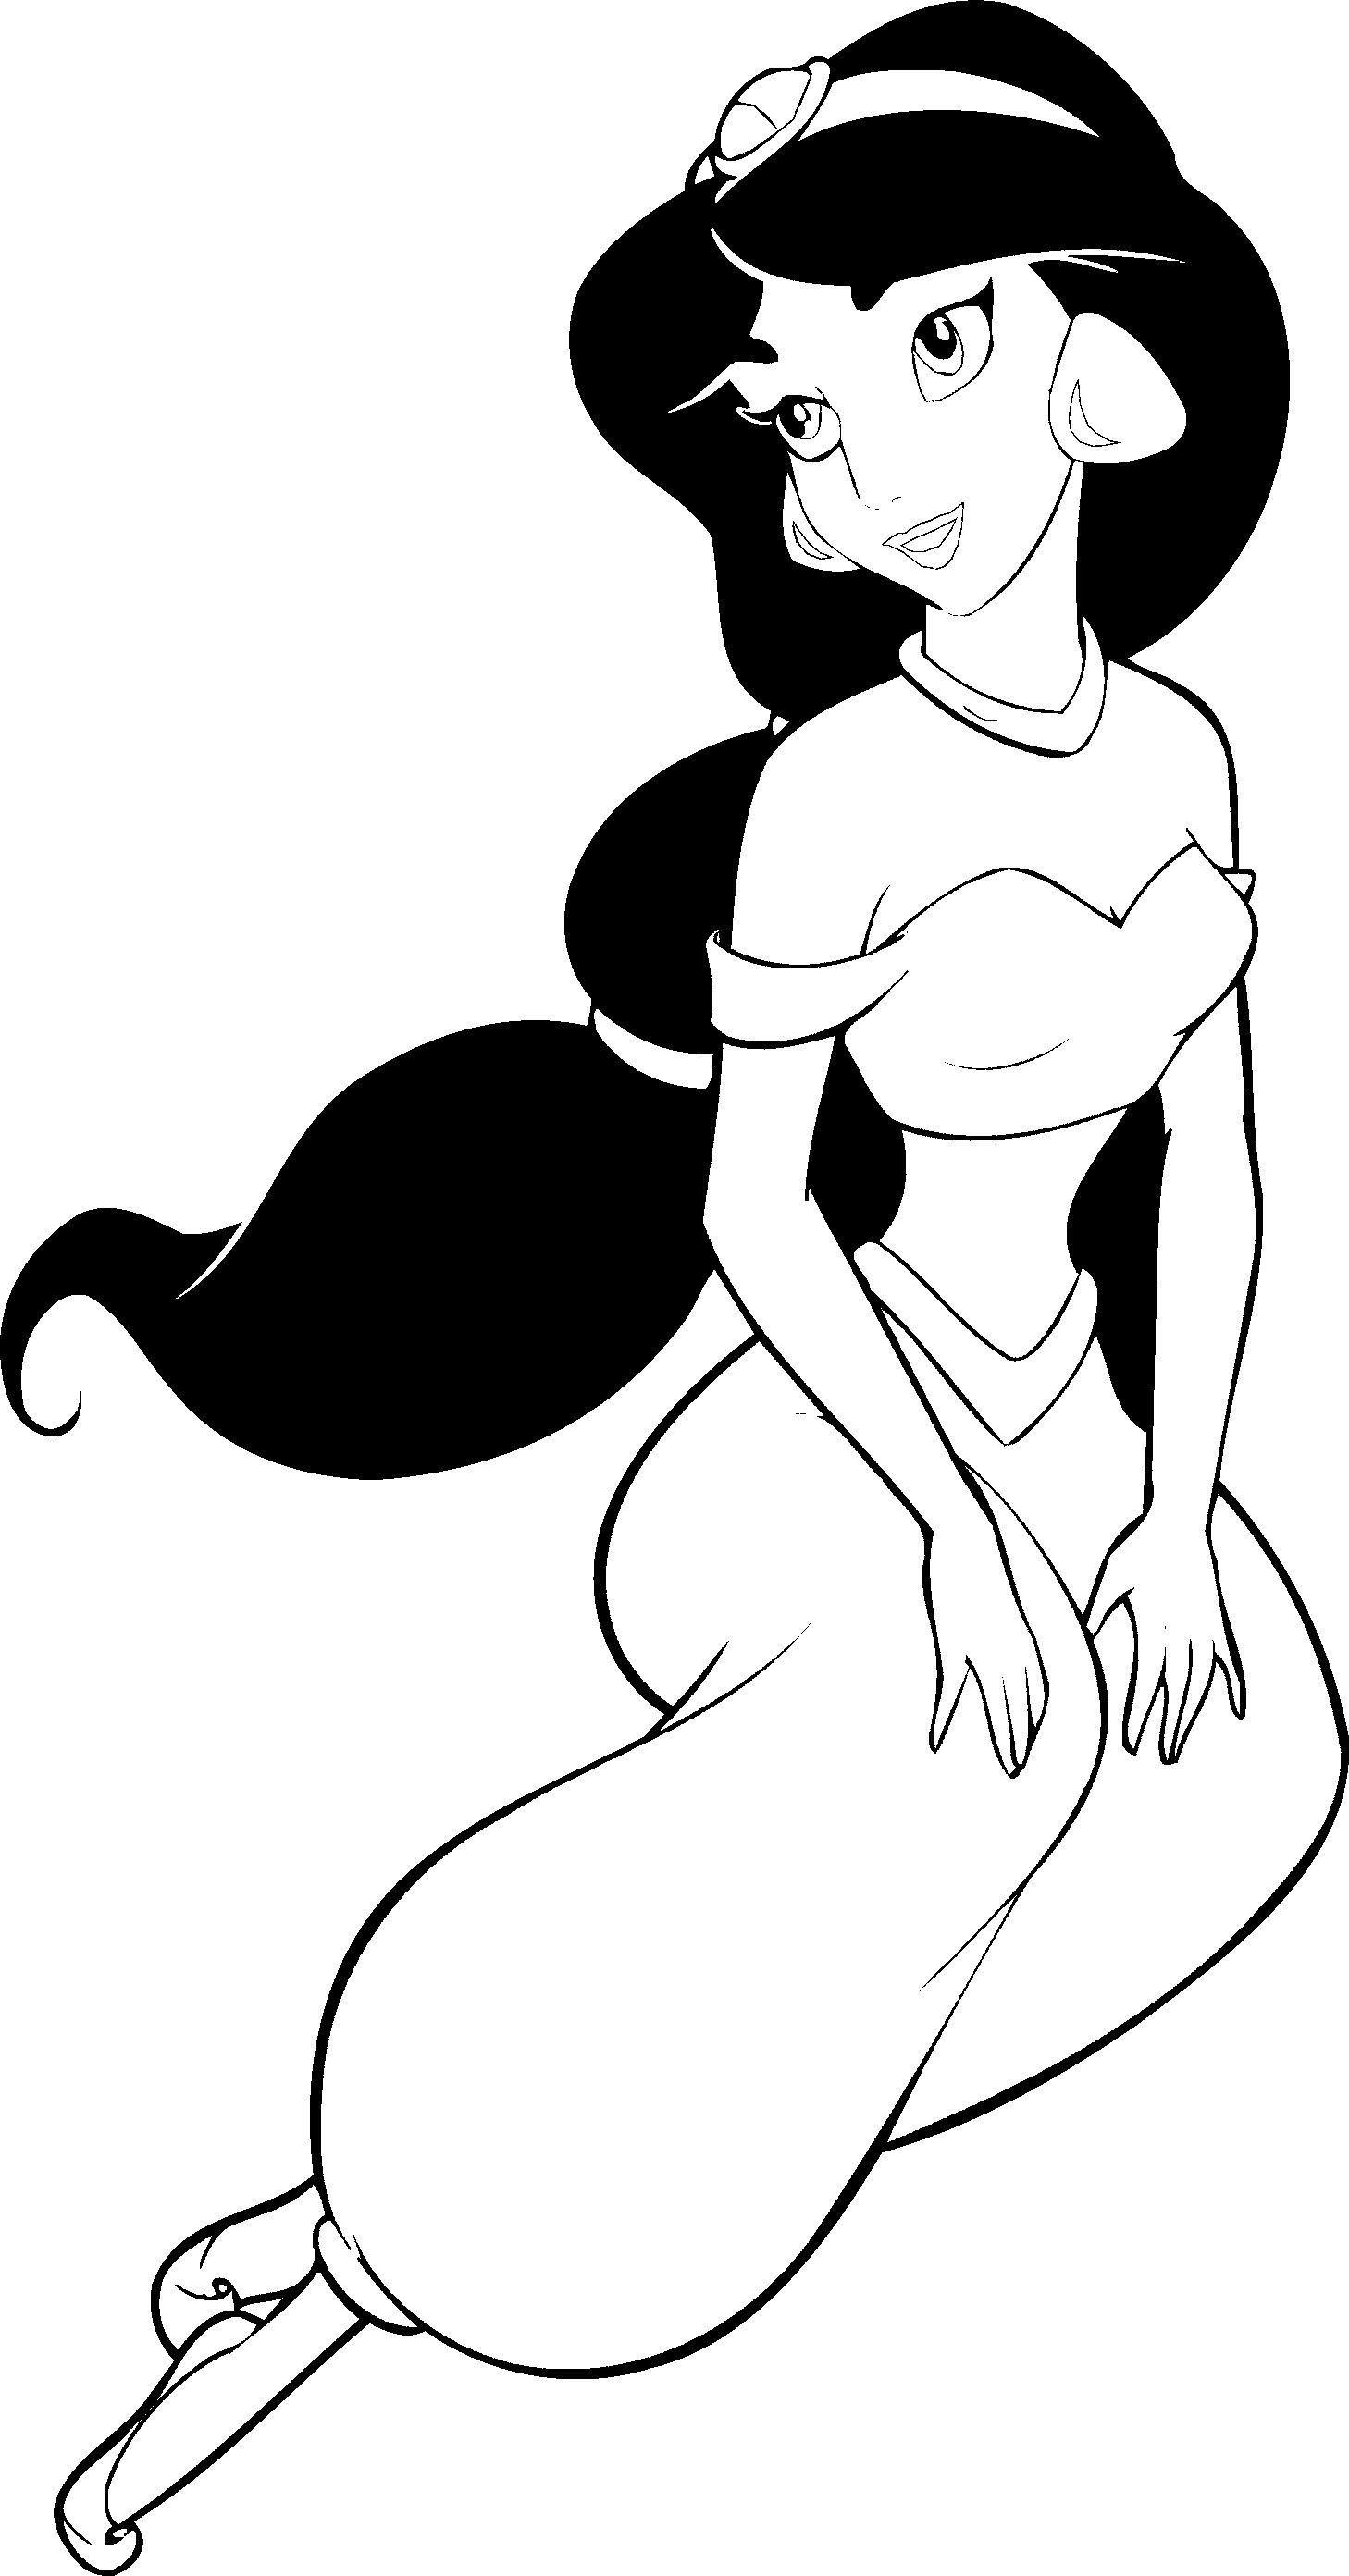 Jasmine Disney Princess Coloring Pages Princess Coloring Pages Disney Princess Colors